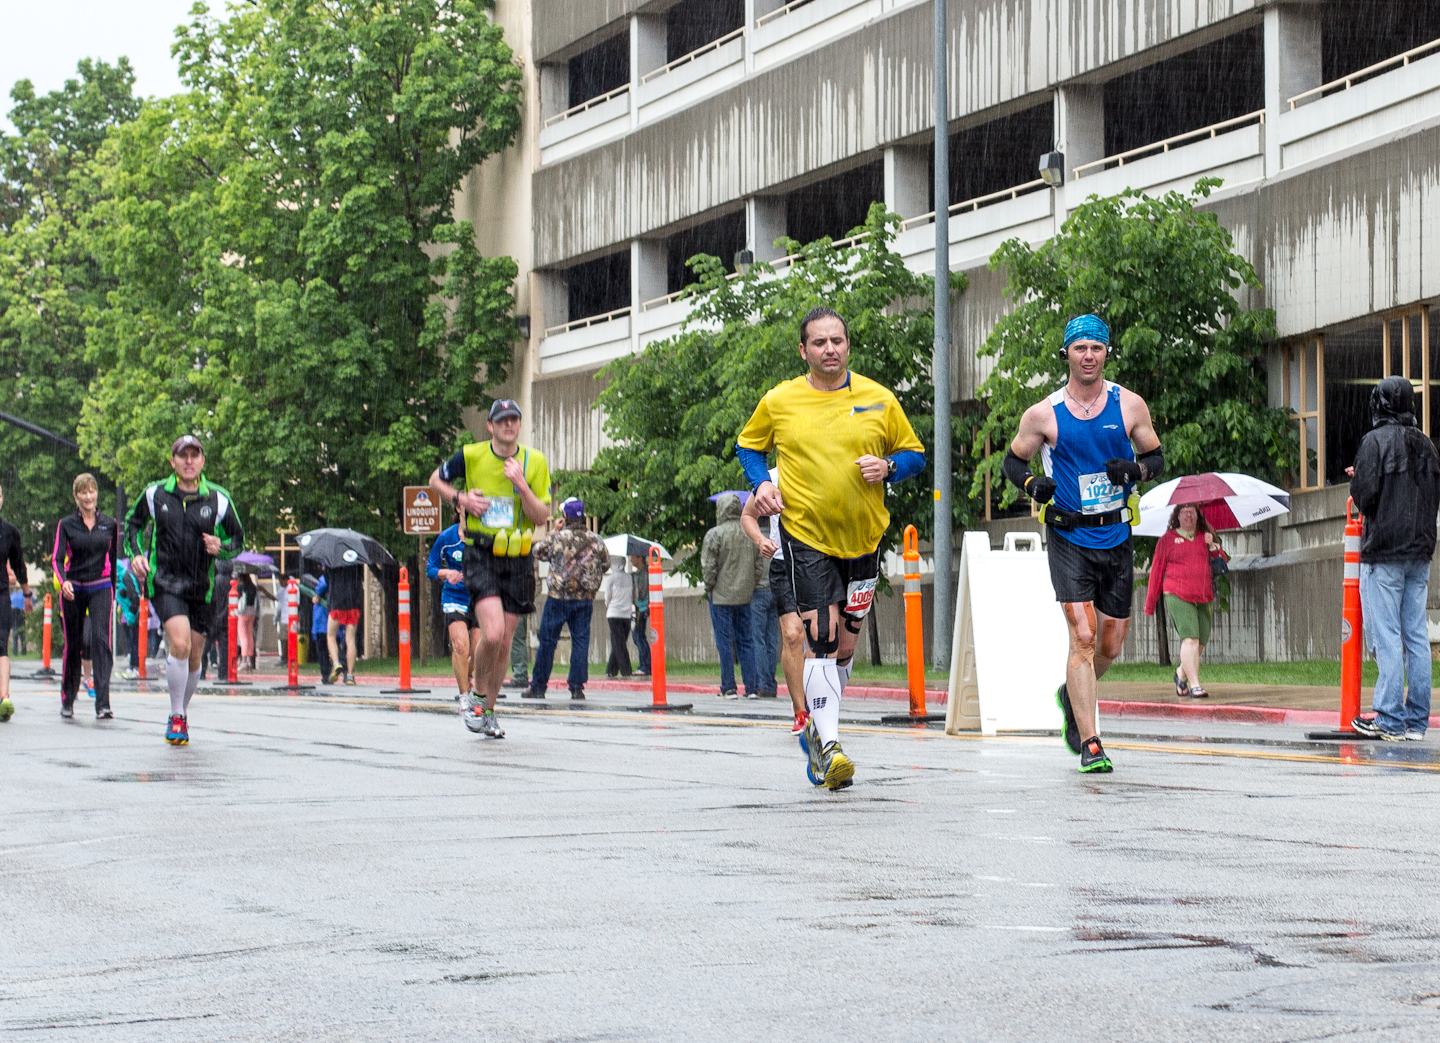 rainy Ogden Marathon, run